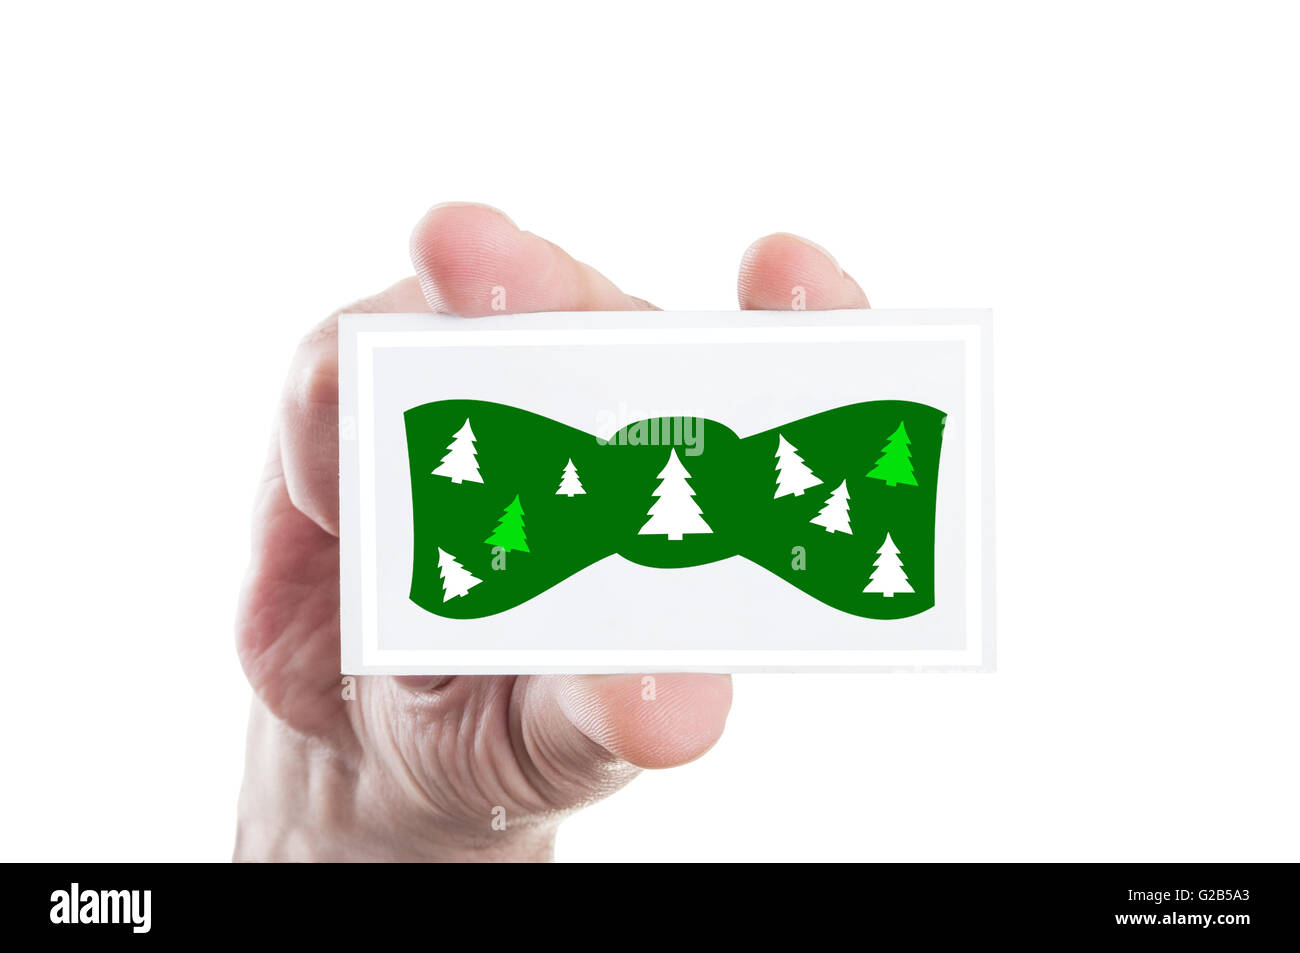 Christmas bowtie concept illustration on a card - Stock Image